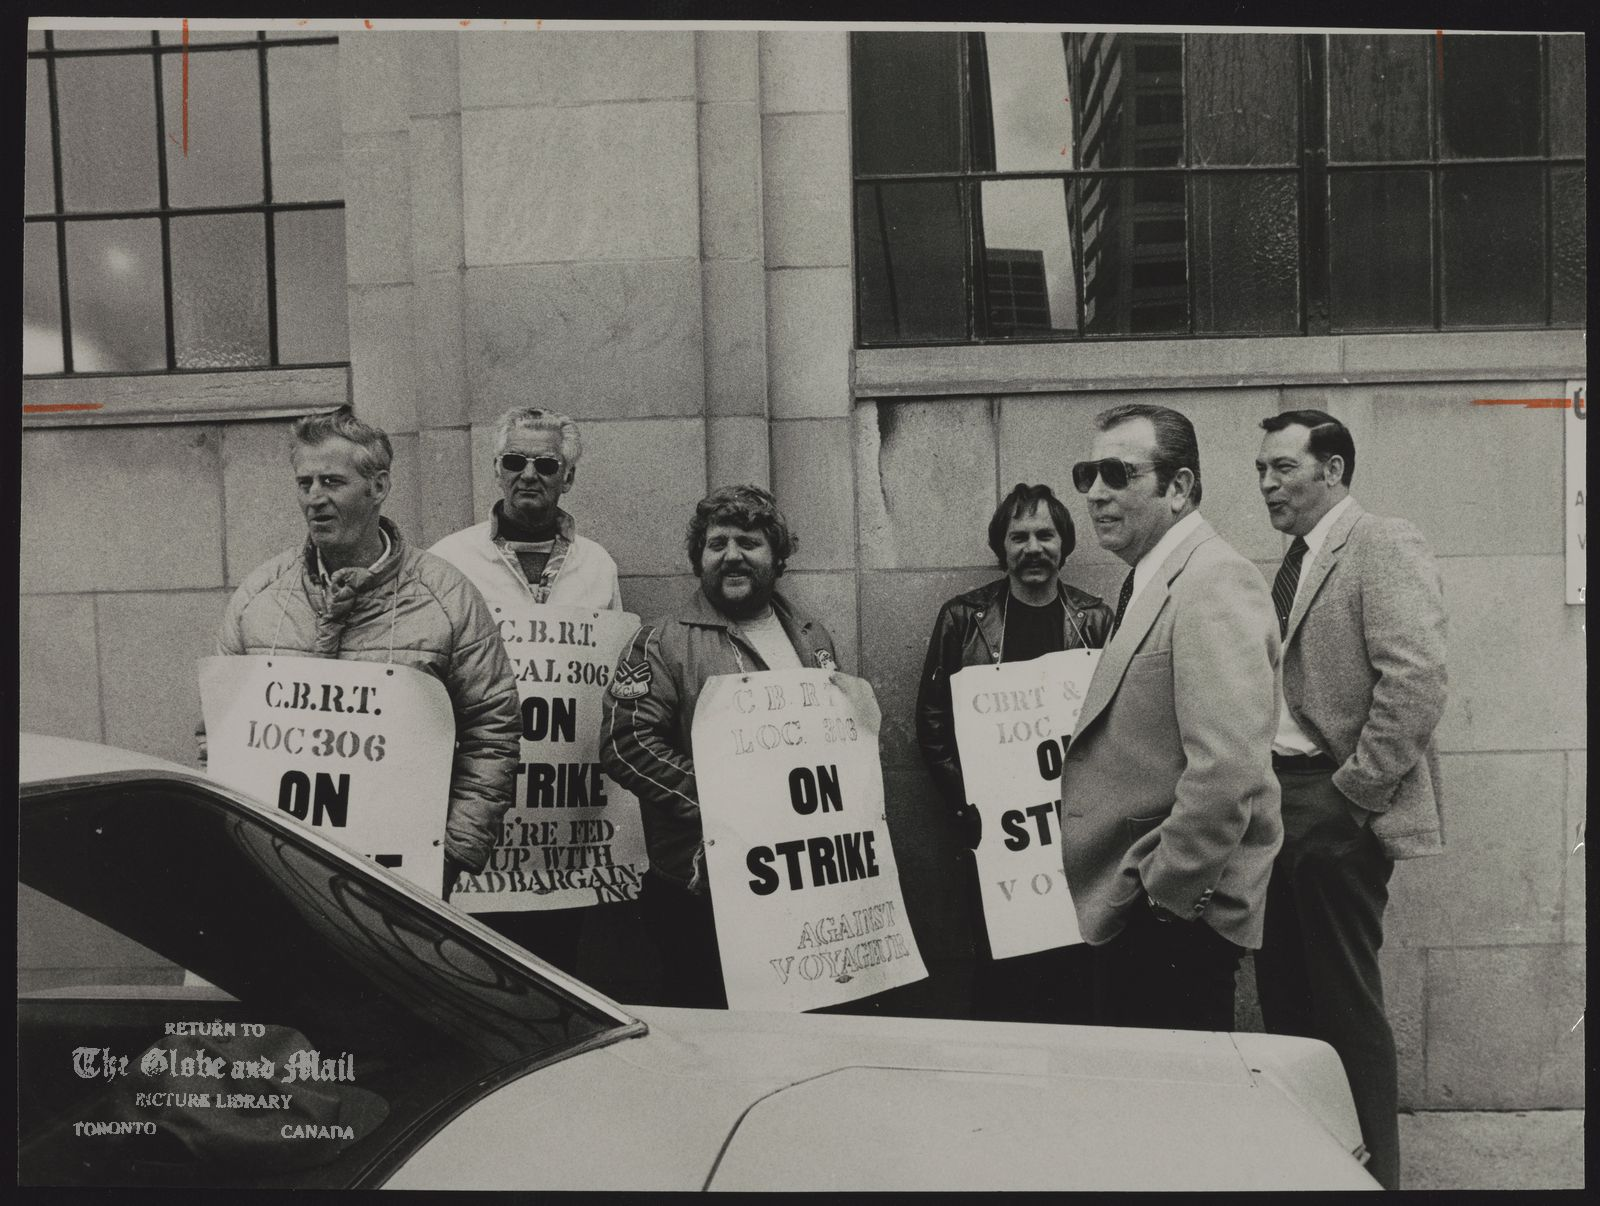 VOYAGEUR COLONIAL LTD. Gordon Grant (right) and Stanley Gayler talk to pickets on strike at Voyageur Colonial Ltd. last month.